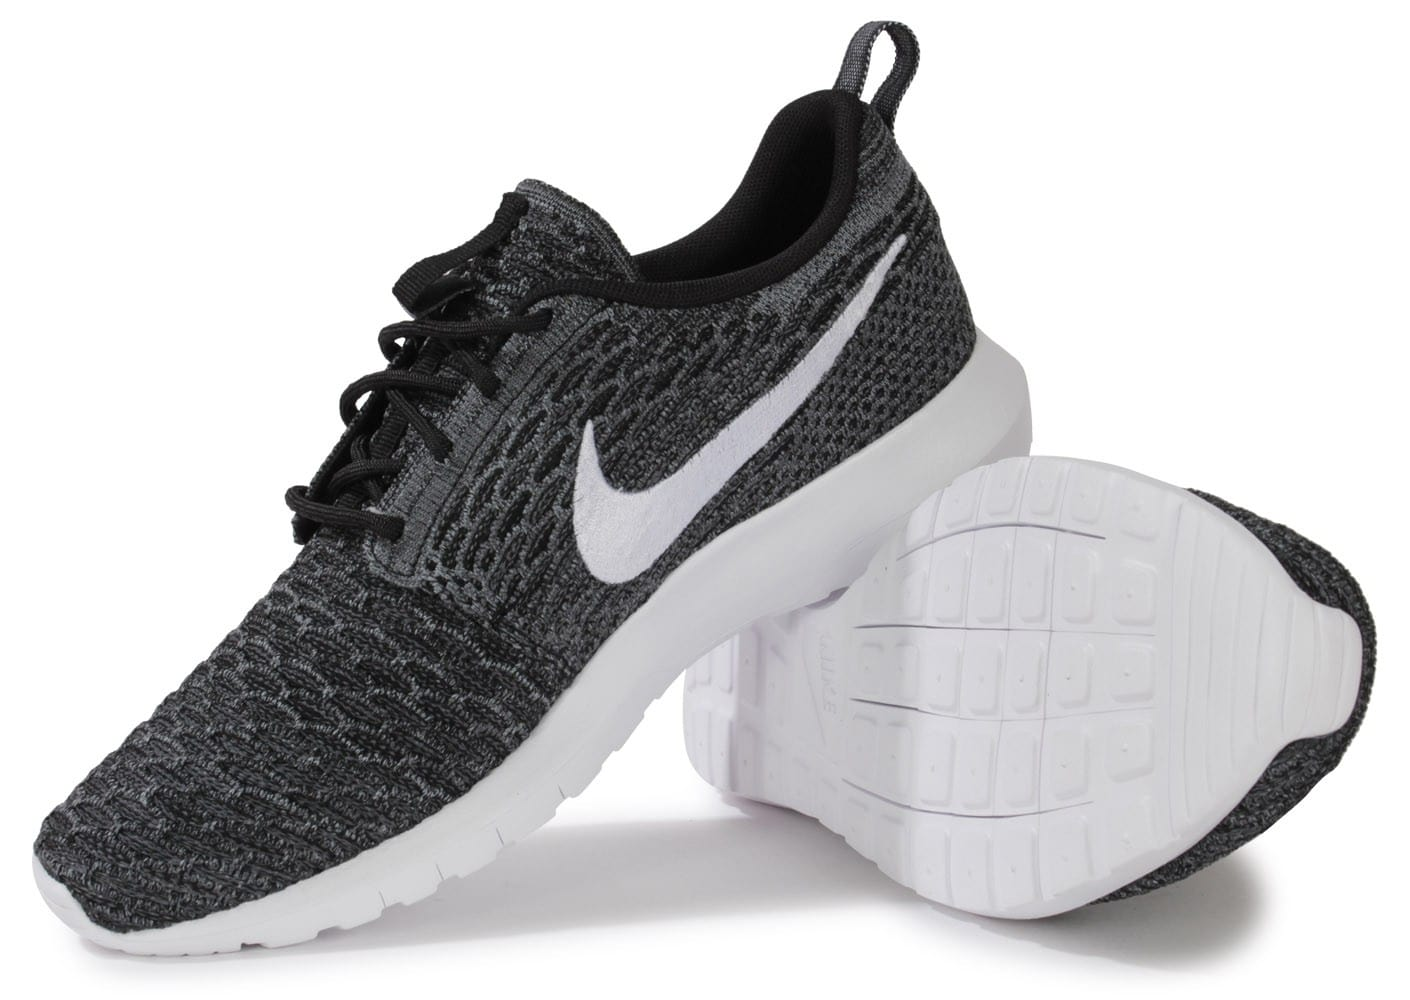 erfvw  Chaussures Nike ROSHE RUN FLYKNIT NOIRE ET BLANCHE vue intérieure